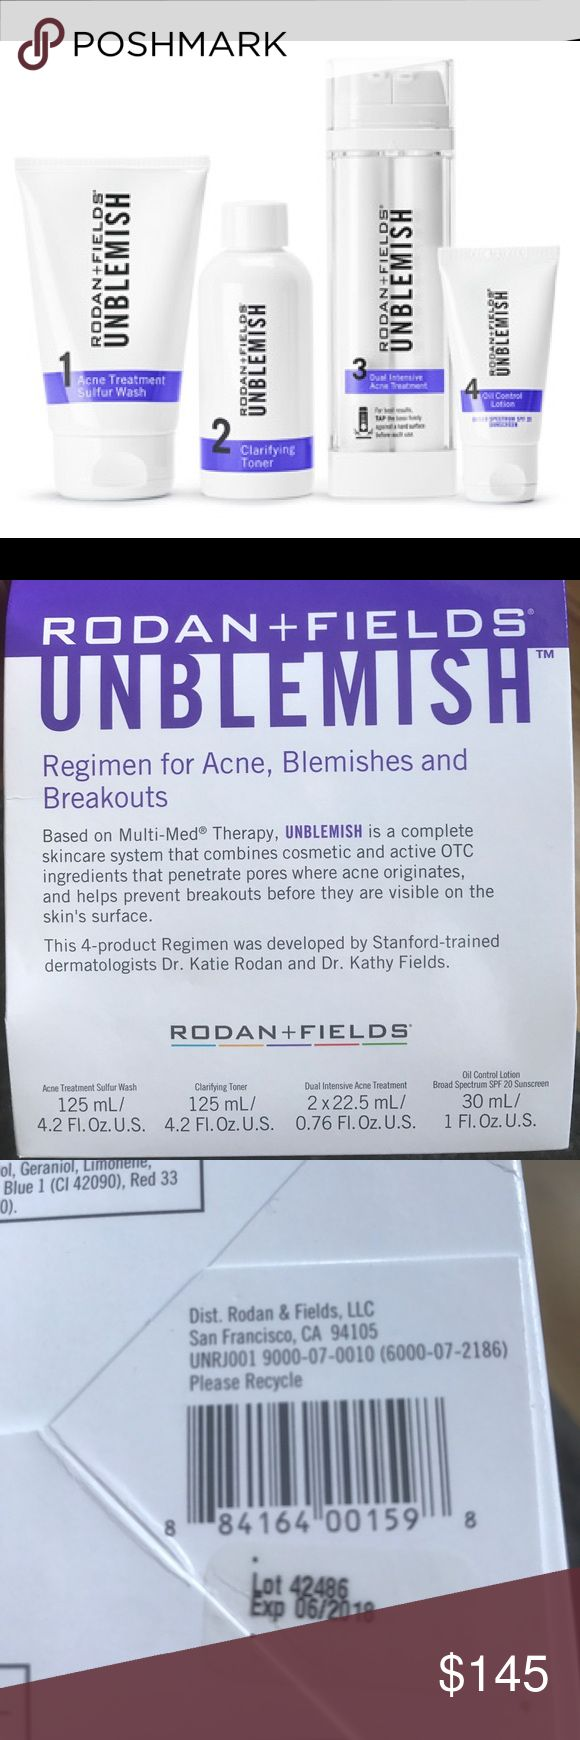 Rodan and Fields Unblemish regimen Rodan and Field New regimen sealed, full size.  Exp. Date is  6/2018.  Rodan and Fields is currently the number 1 premiere skin care in the US and Canada w/ no paid advertising.  I cant rave about their products enough.  I have seen this product change lives for people that suffered with adult acne.  Also all R&F regimens are anti-aging, made by the same doctors who created Proactive.  60 day supply Rodan and Fields Other